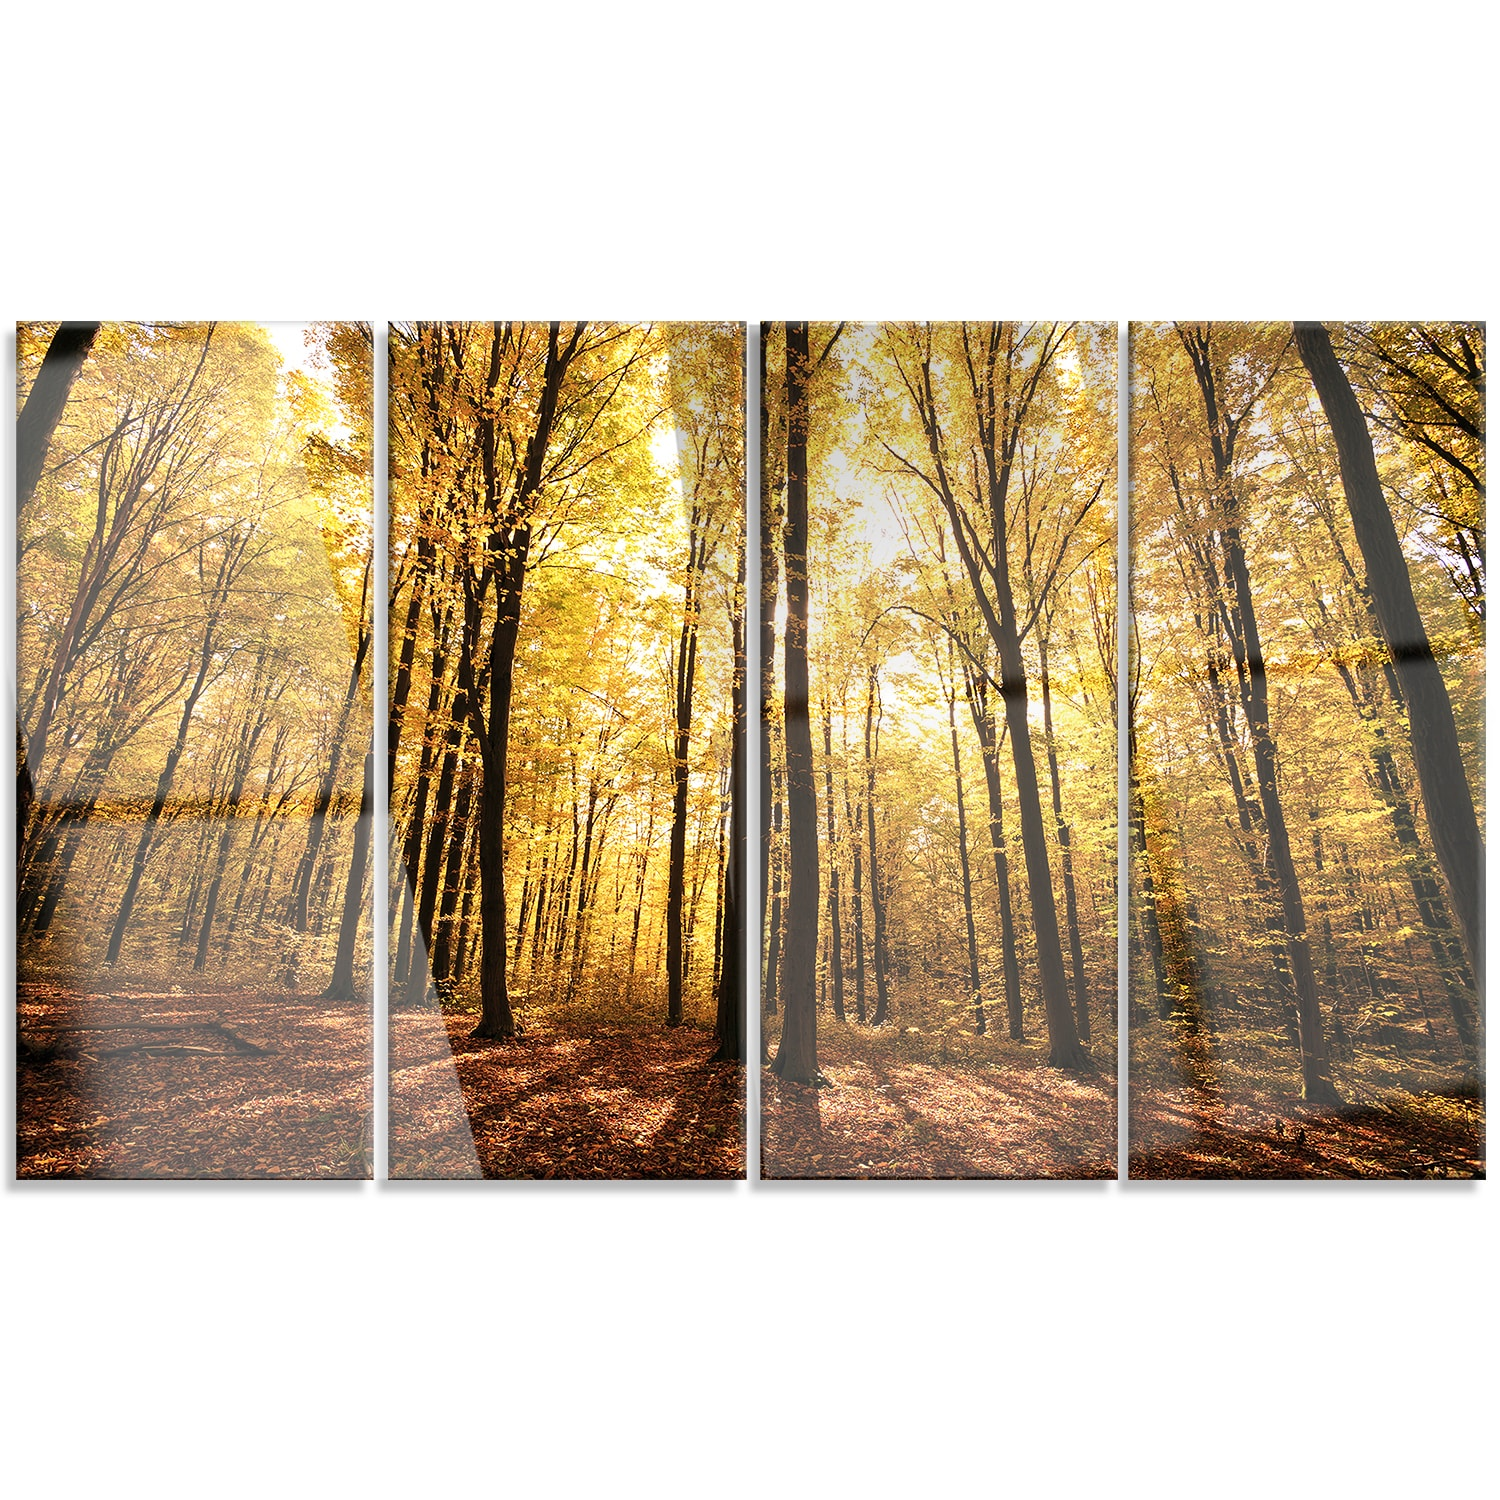 Pretty Outdoor Wall Art Metal Contemporary - The Wall Art ...